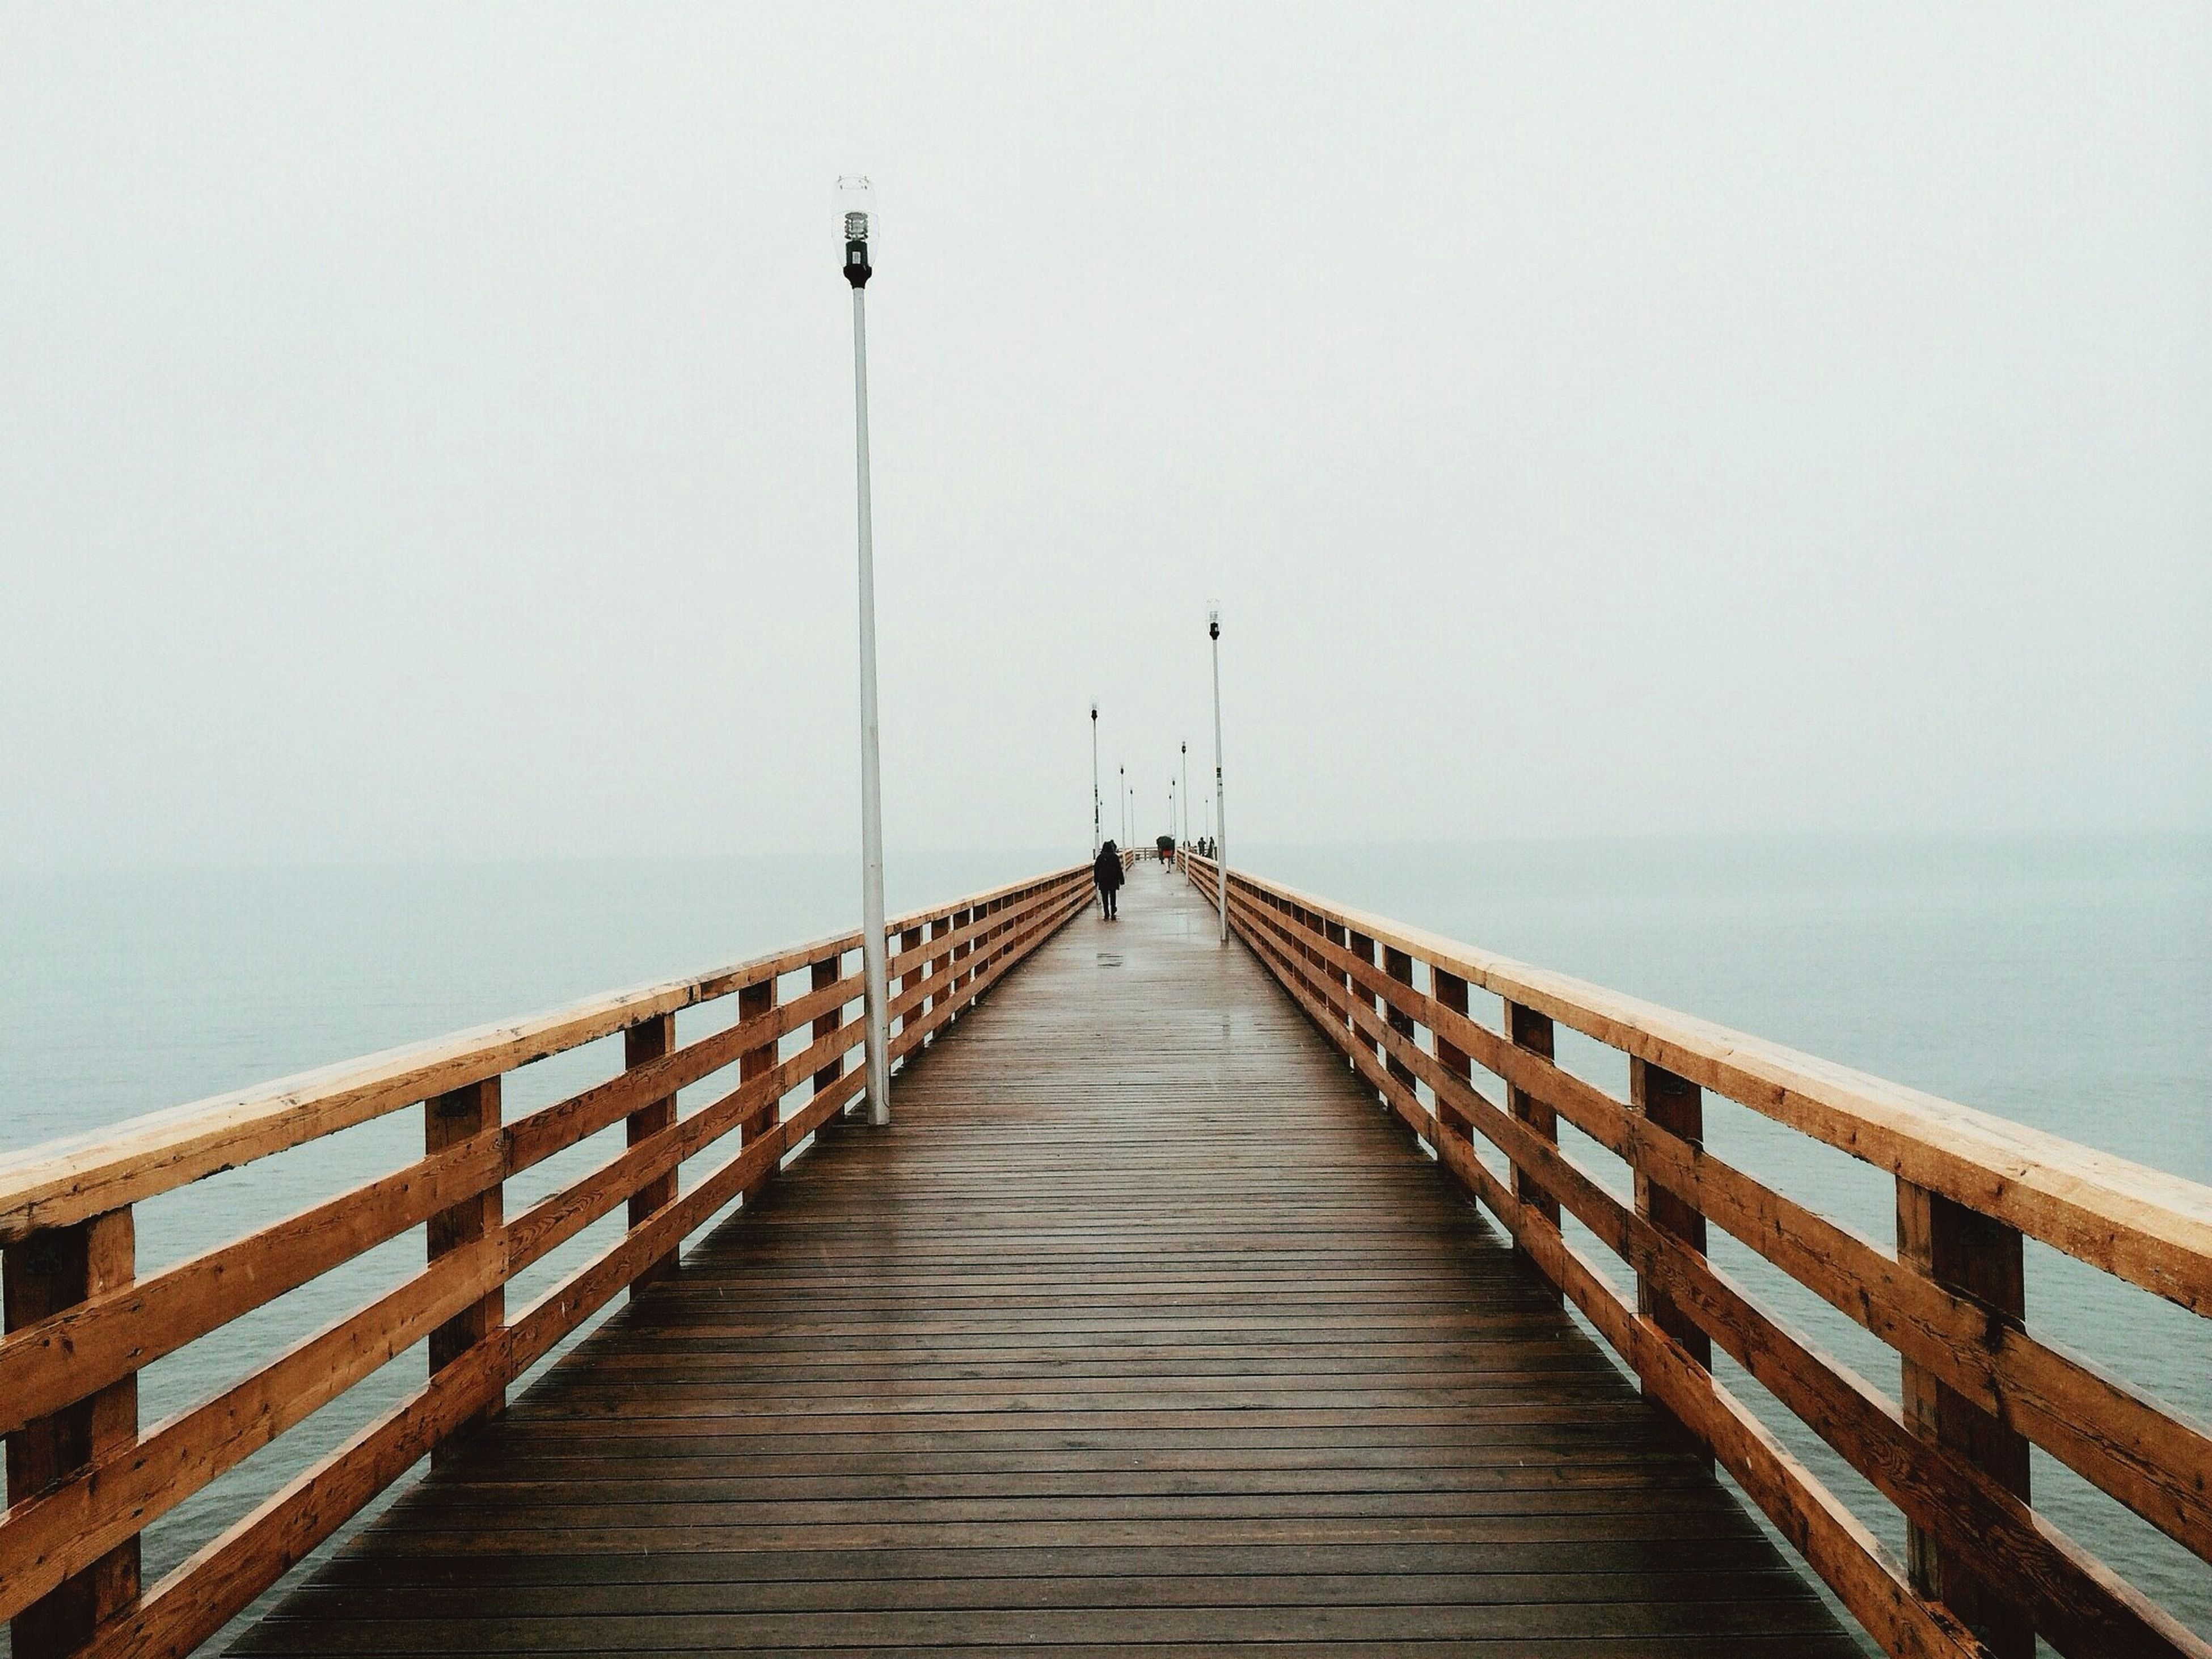 the way forward, sea, pier, railing, water, horizon over water, diminishing perspective, clear sky, copy space, tranquility, tranquil scene, long, vanishing point, wood - material, boardwalk, jetty, built structure, scenics, street light, nature